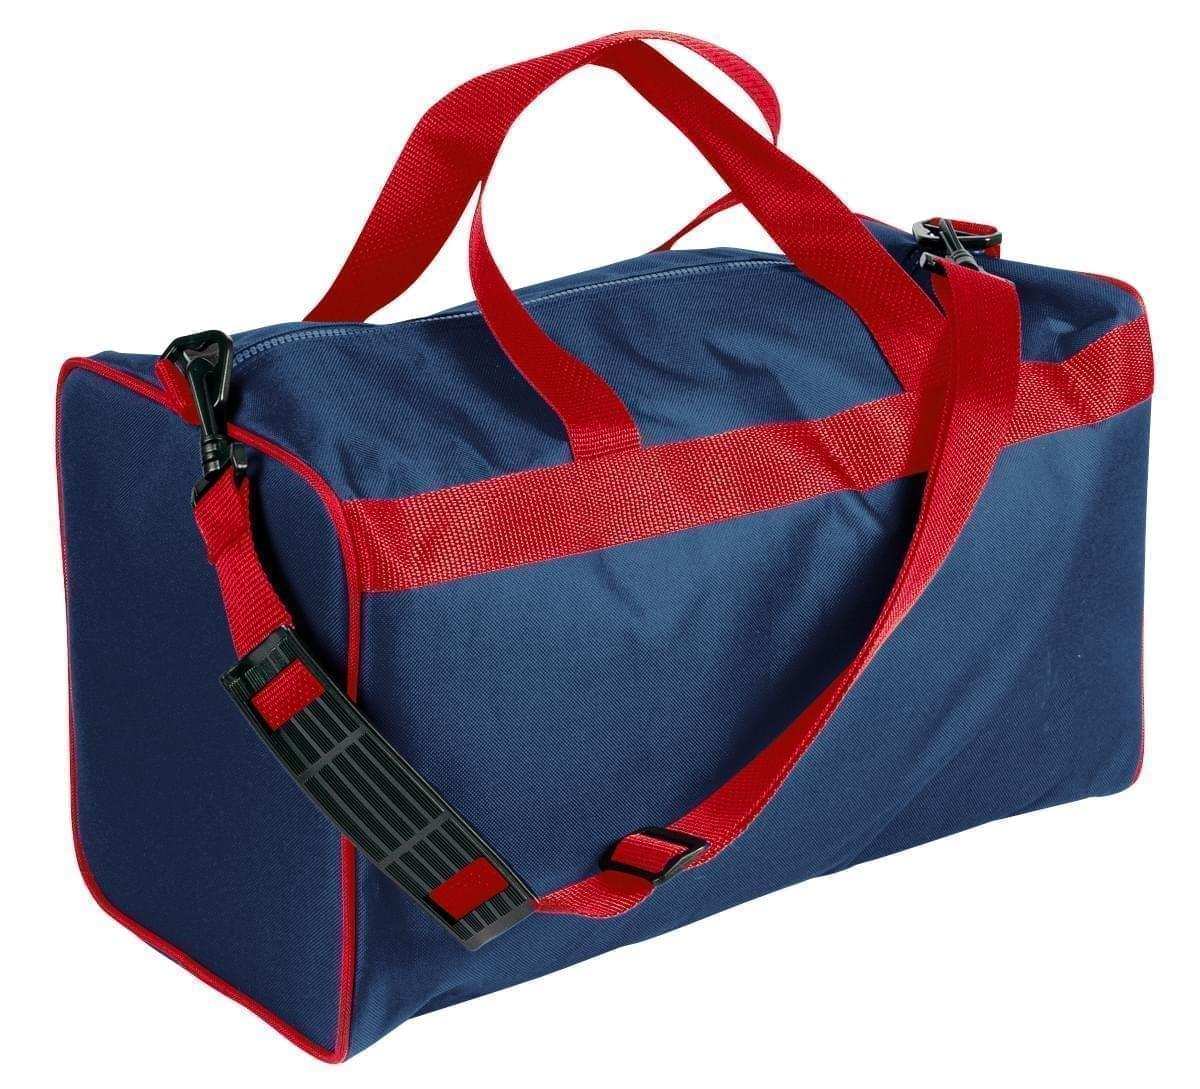 USA Made Nylon Poly Weekend Duffles, Navy-Red, WLKX31AAW2